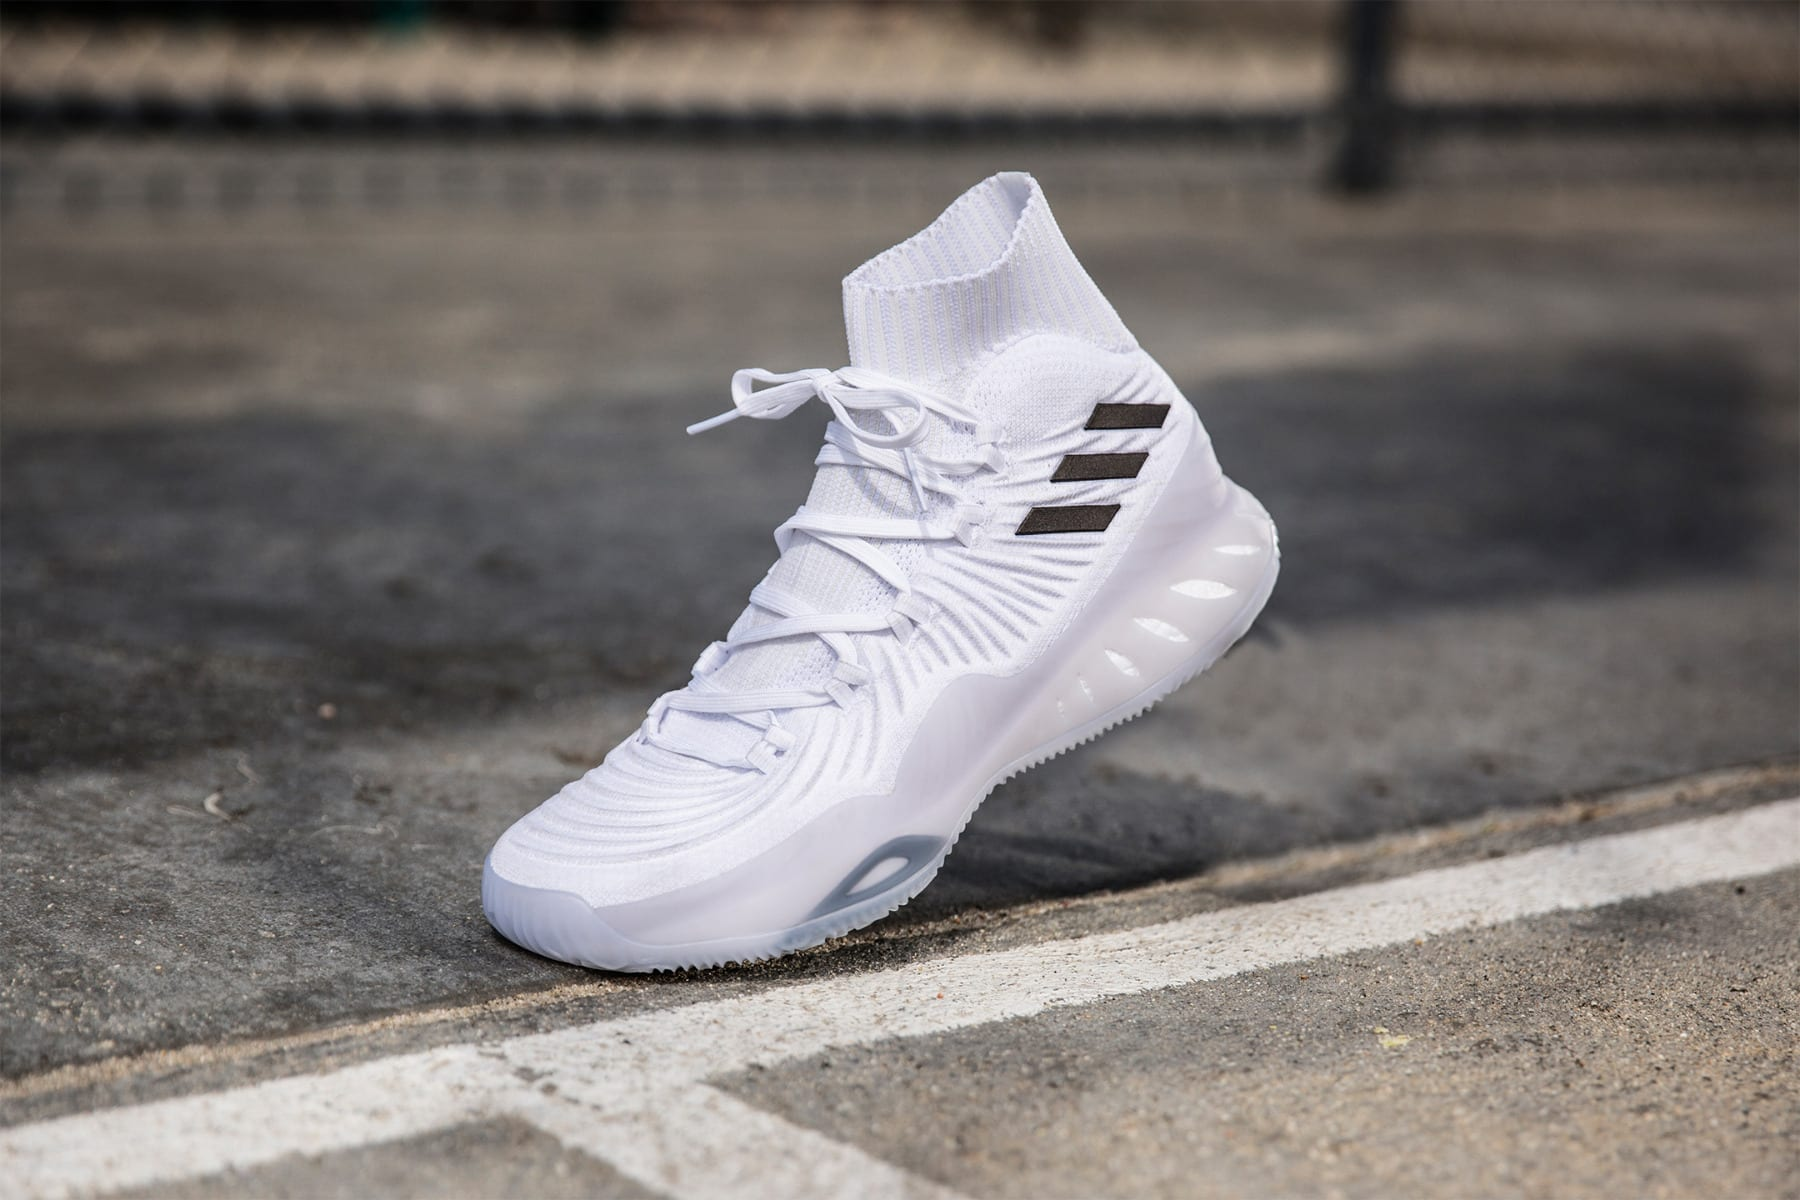 Best Basketball Shoes for Speed